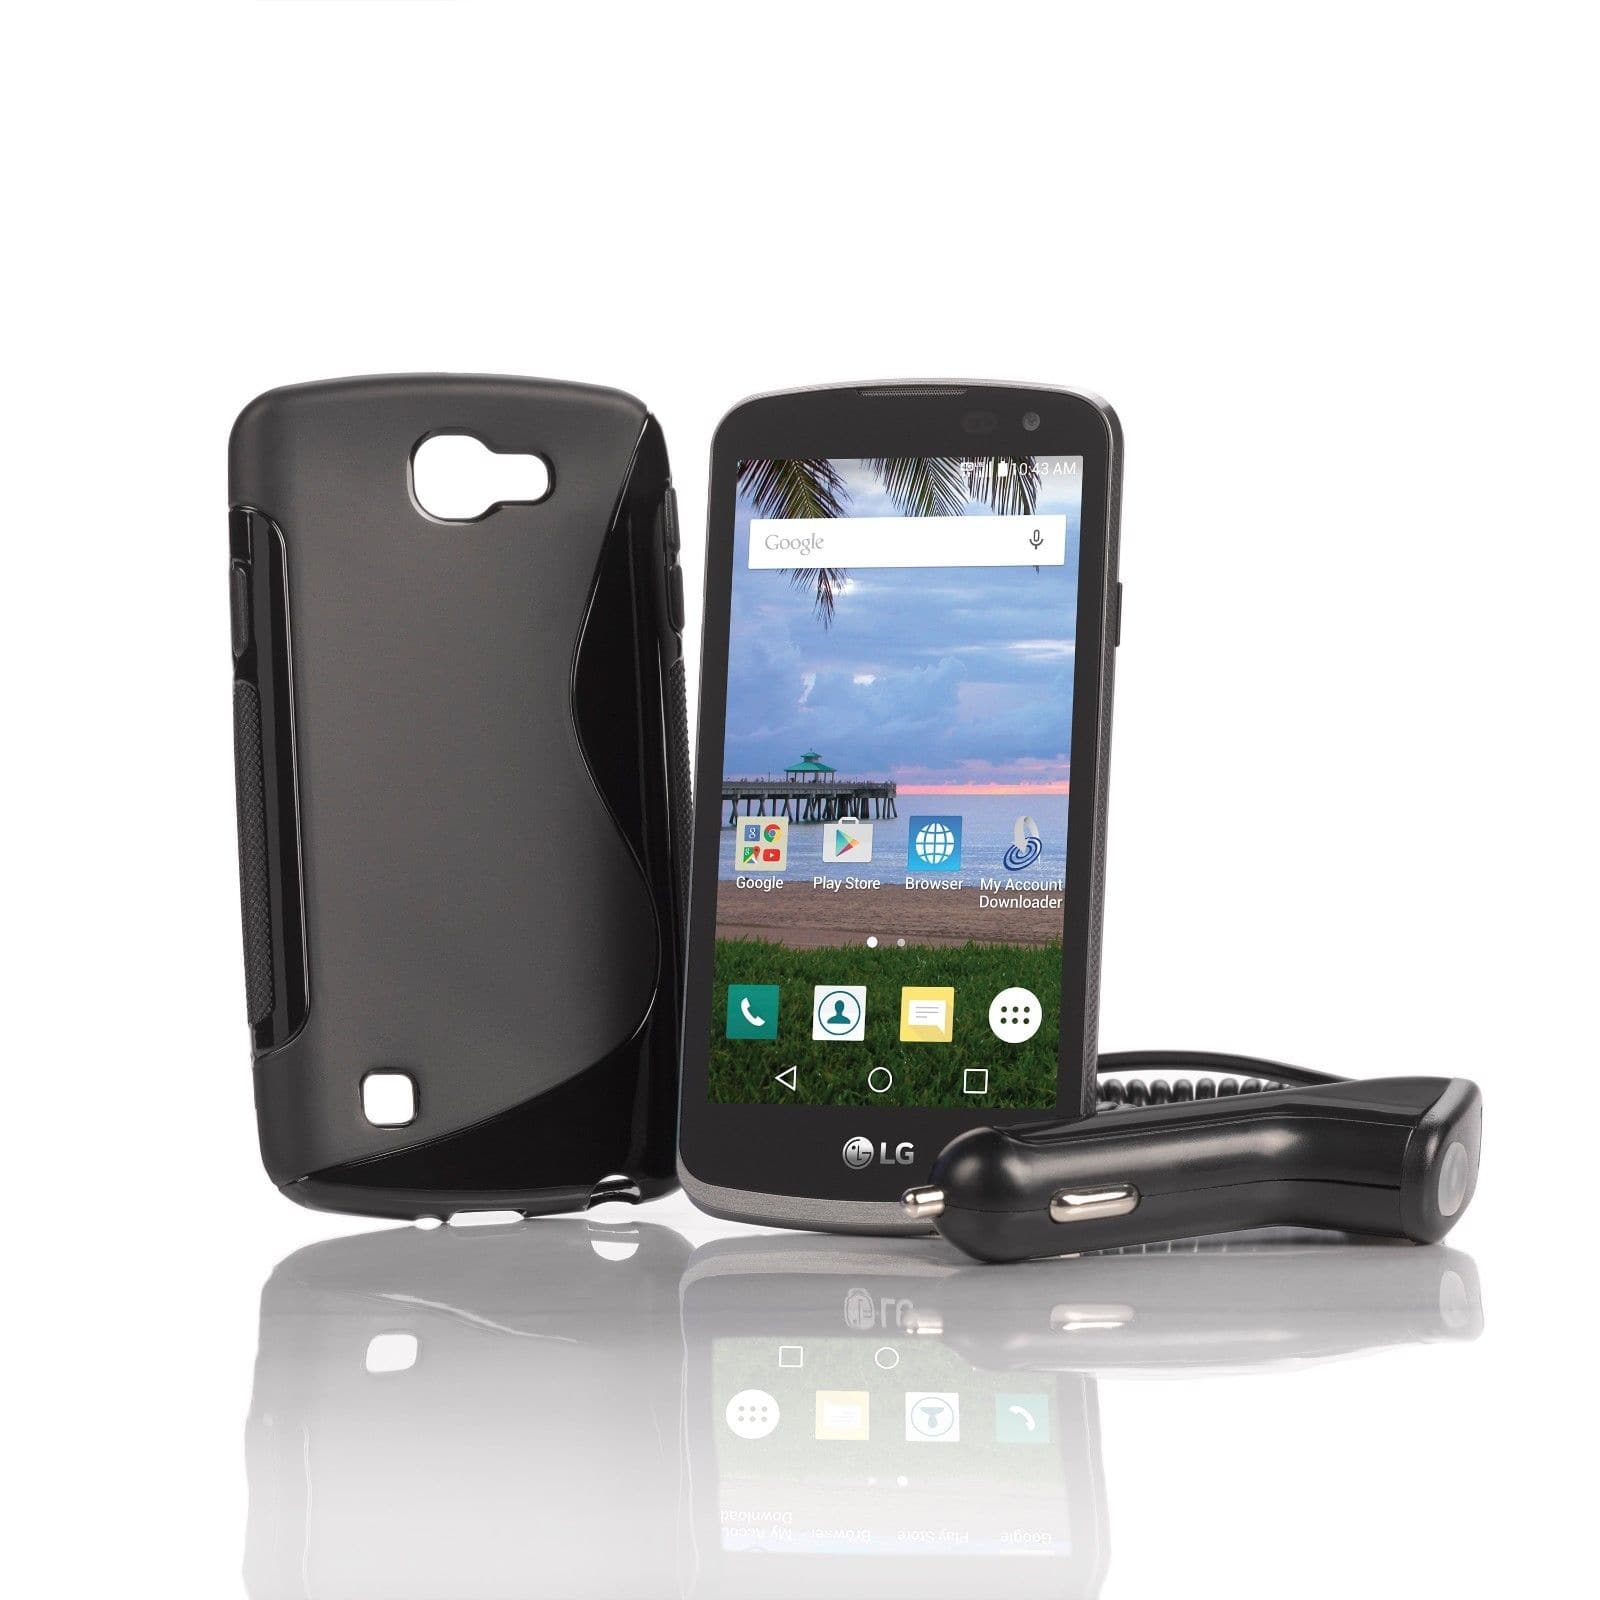 TracFone LG Rebel + 1 Year of Service with 1200 MIN/1200 Text/1200MB, US $49.99+ tax, free shipping